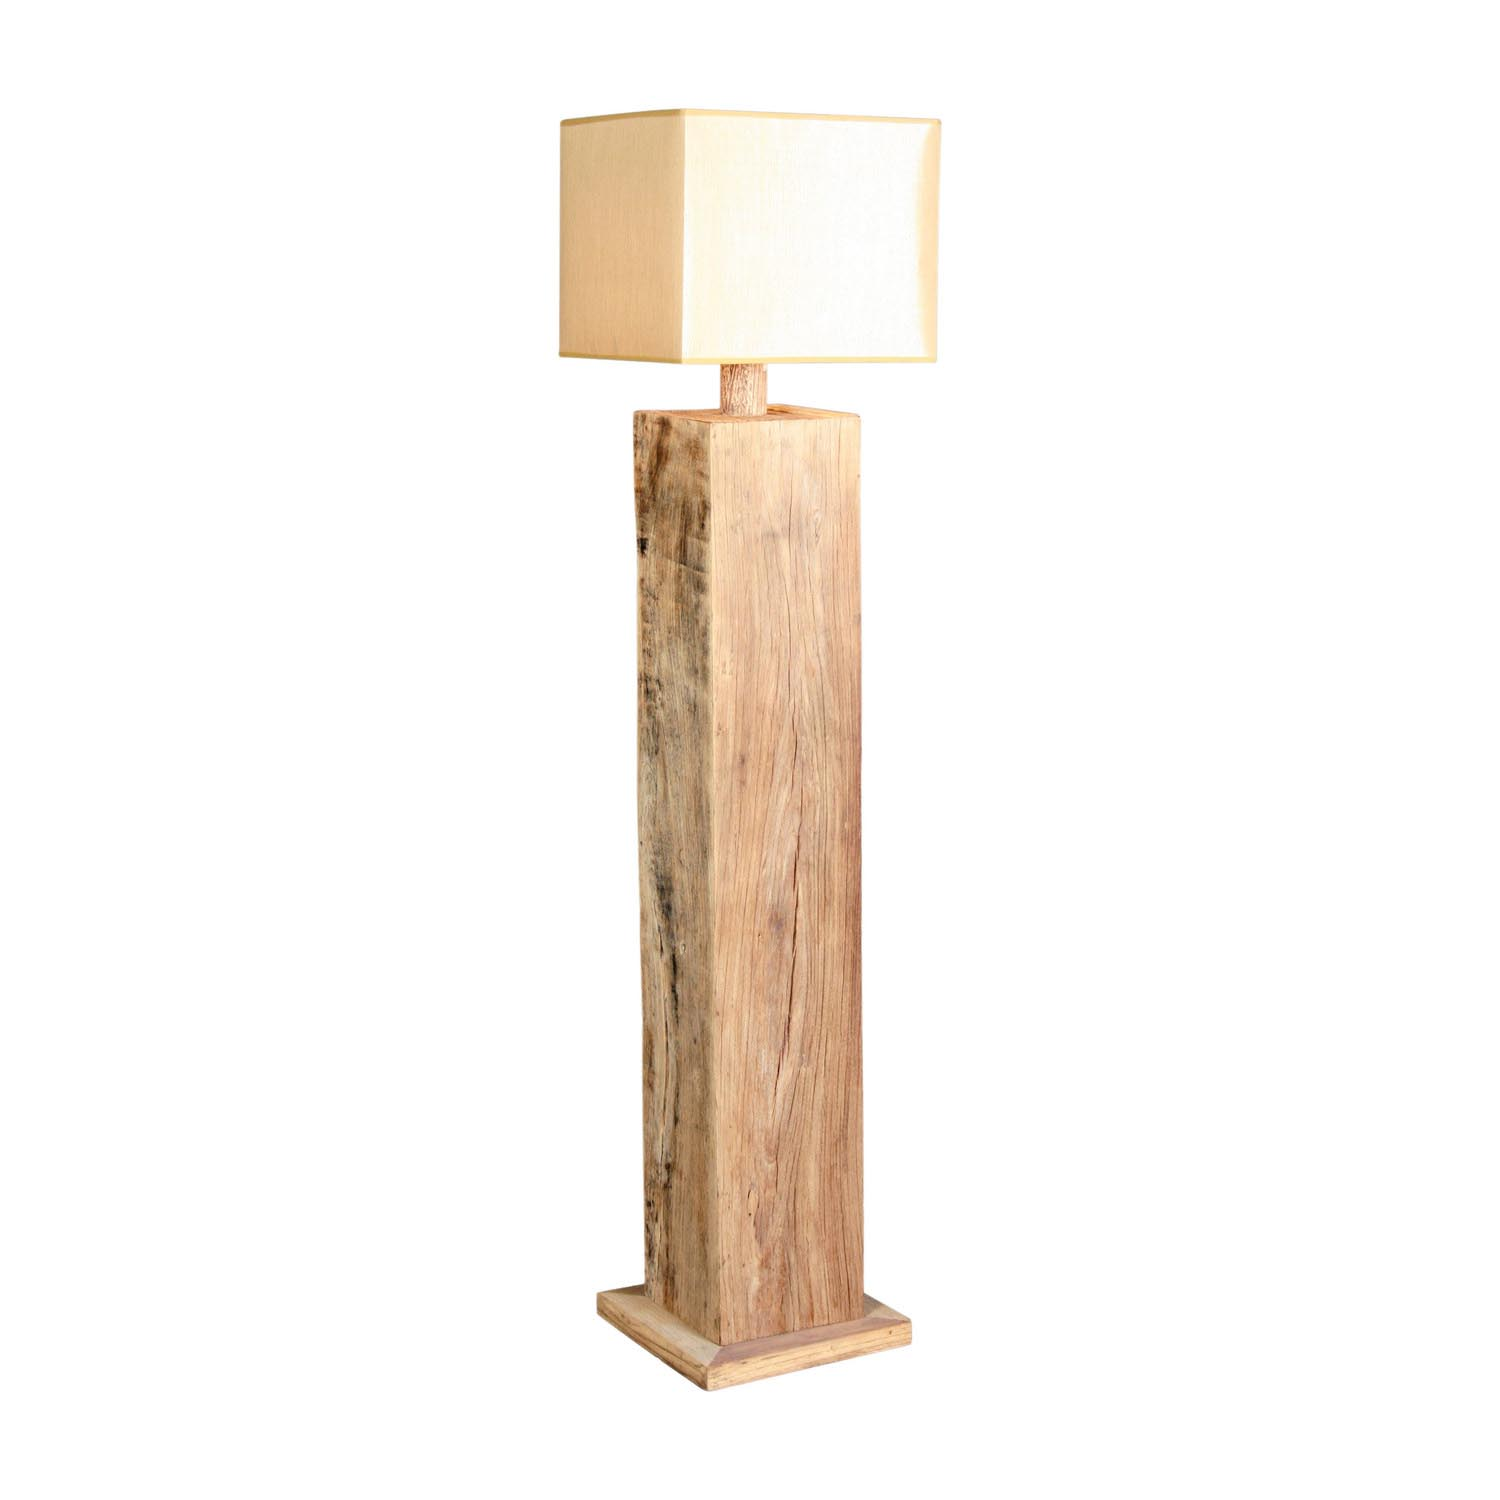 Floor lamps wooden base light fixtures design ideas for Lamp wooden